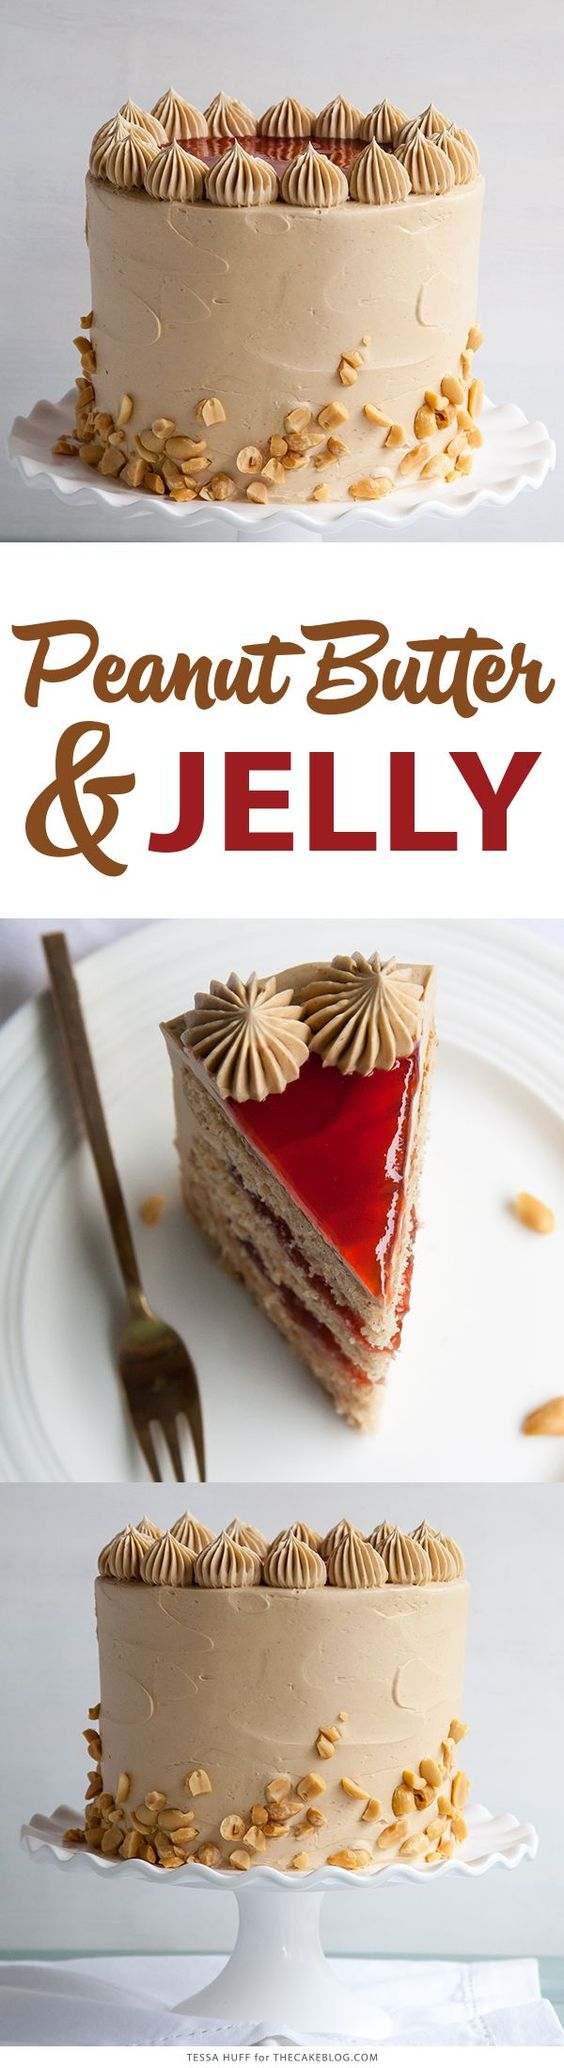 Peanut Butter & Jelly Cake | peanut butter cake with brown sugar peanut butter frosting, strawberry jam and chopped peanuts | by Tessa Huff ...